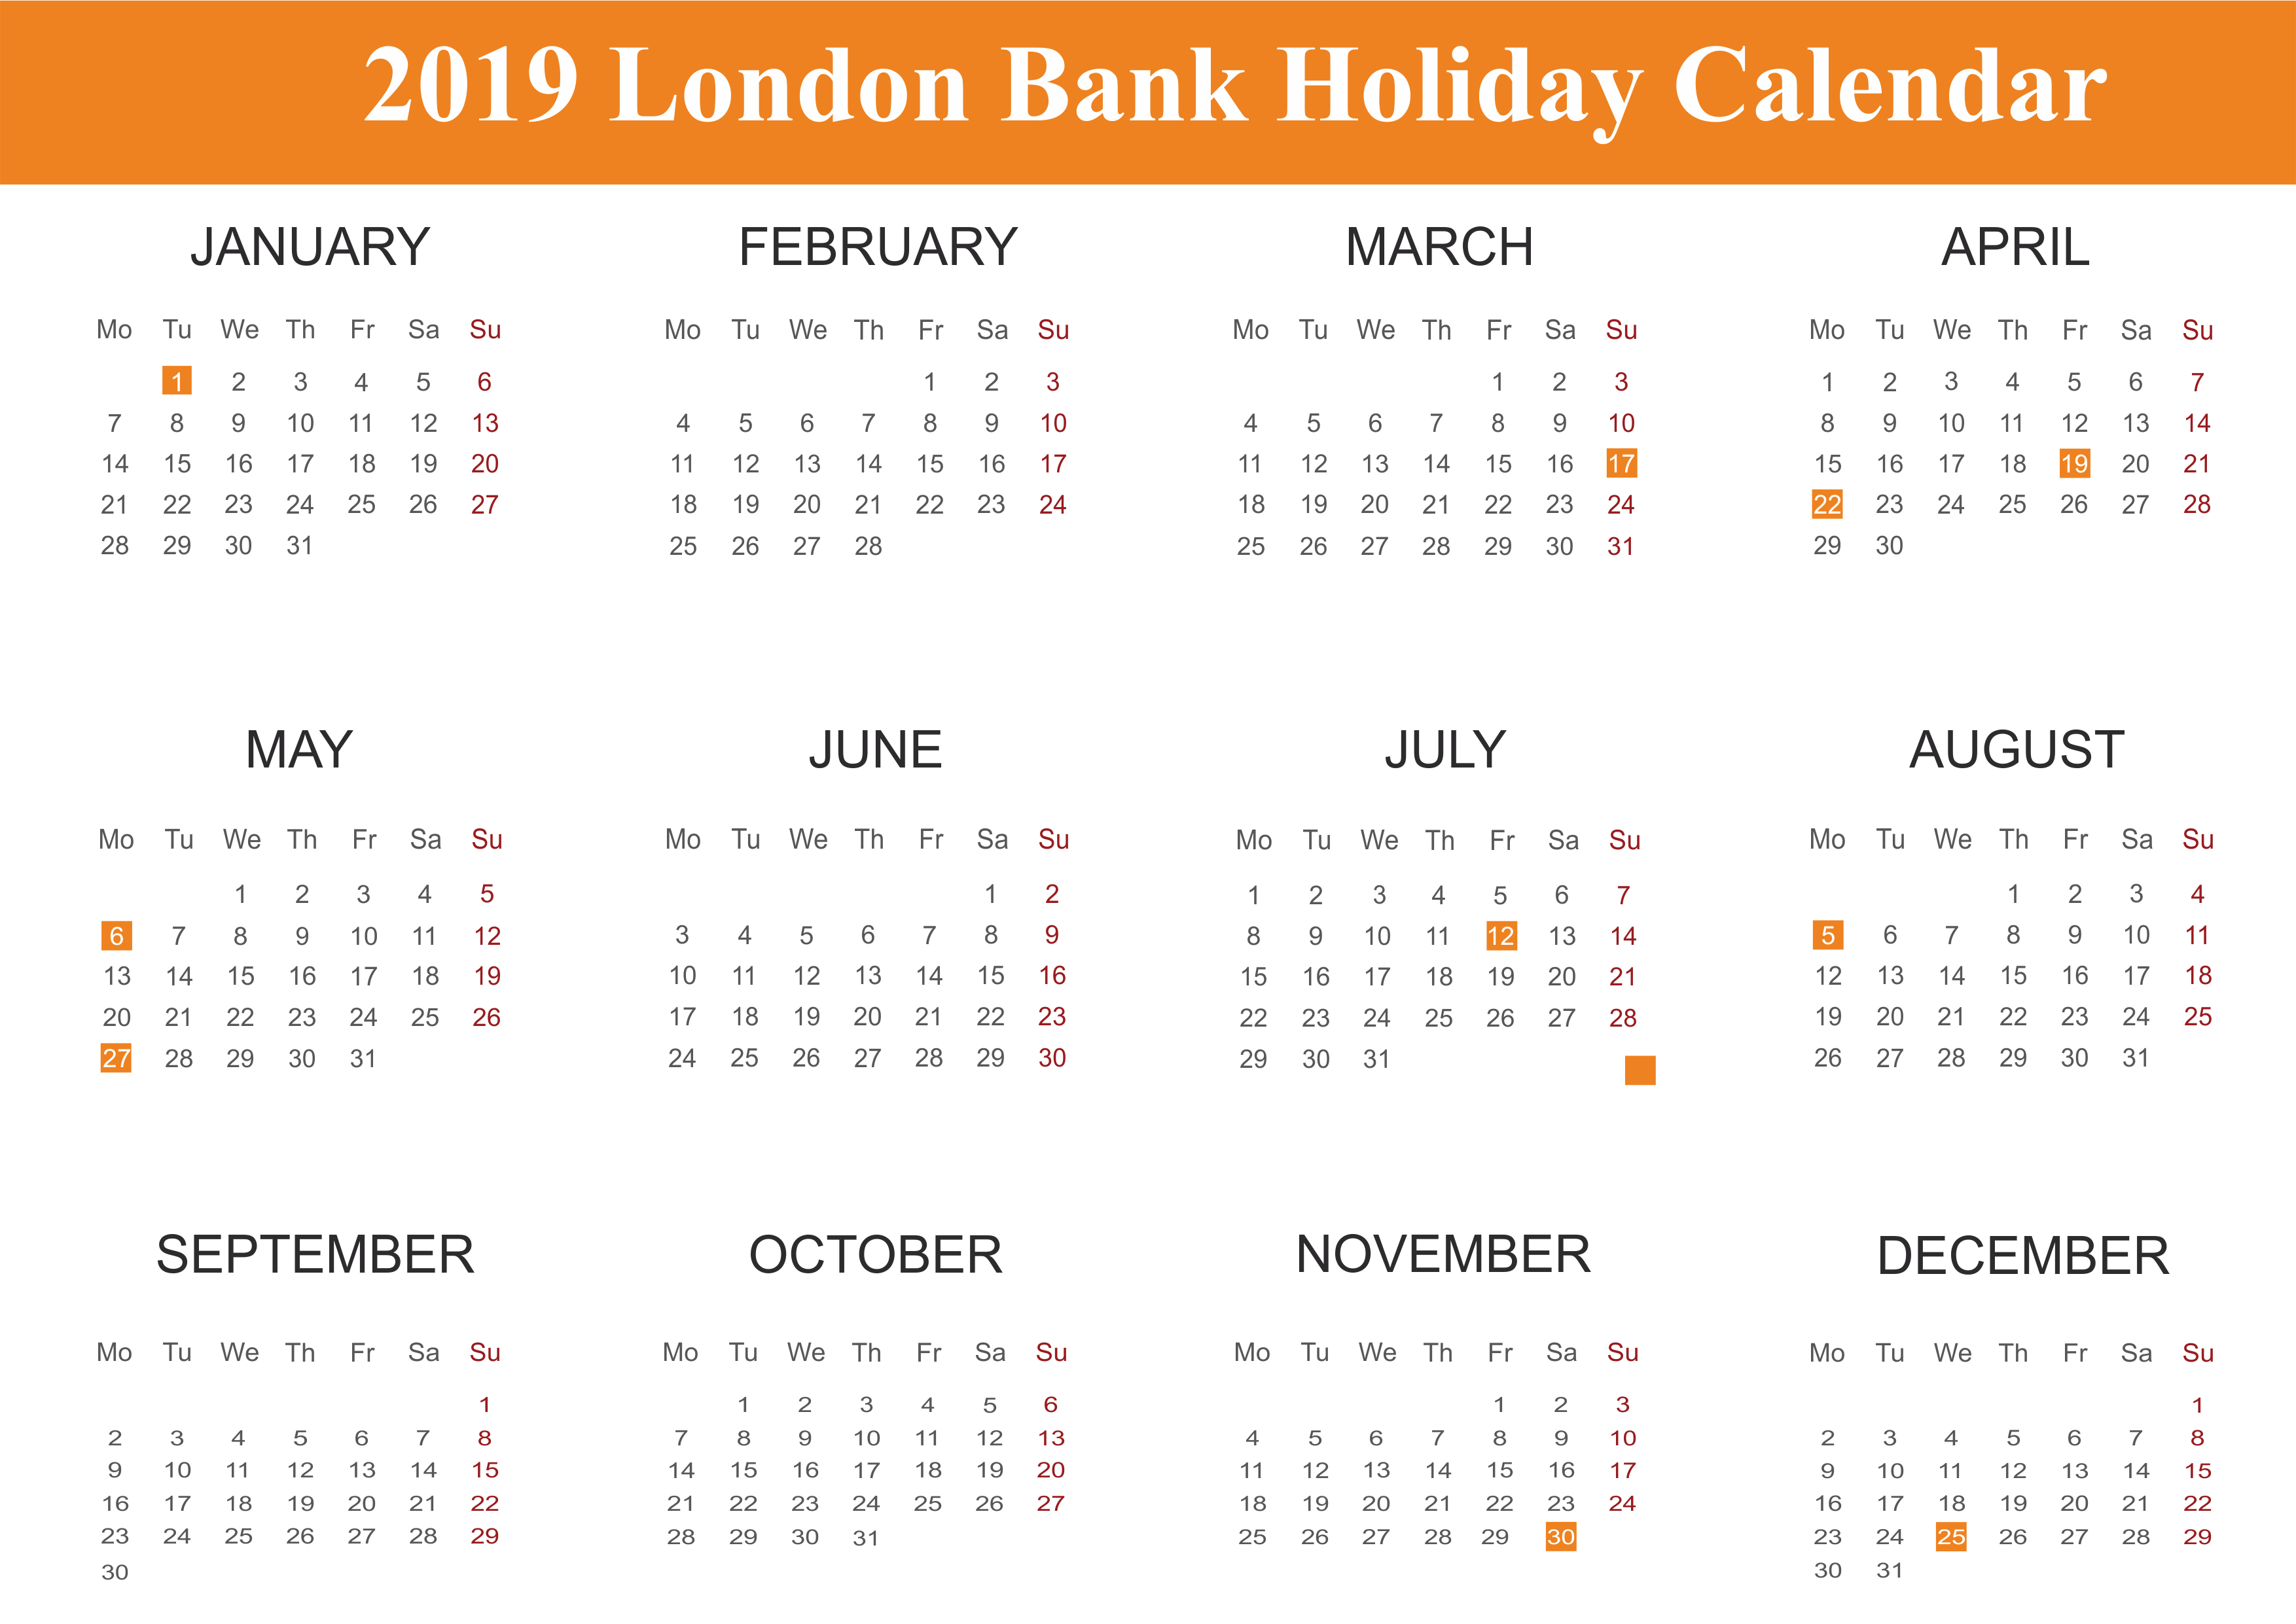 Public Holidays in London 2019